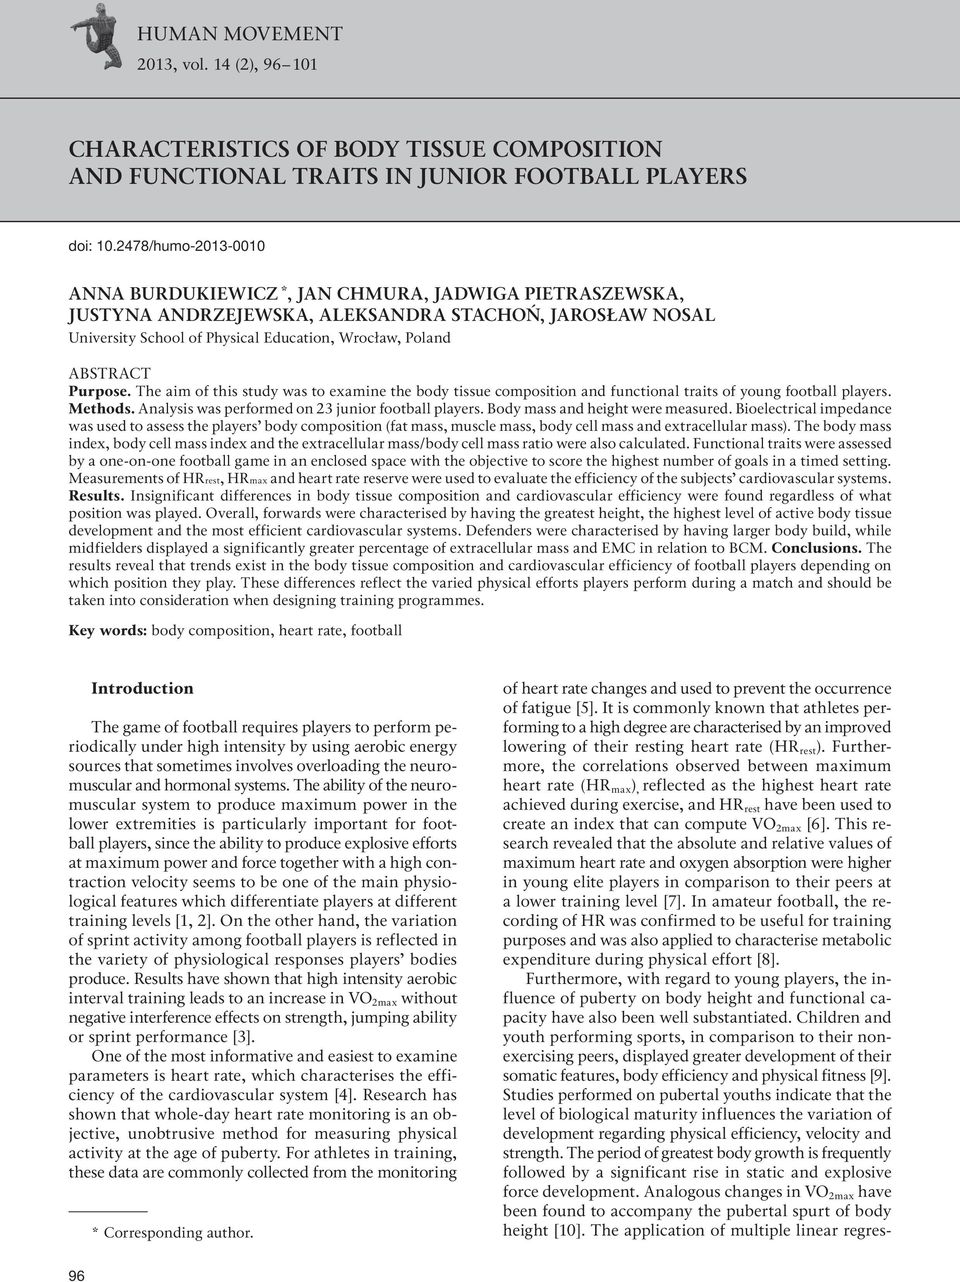 Purpose. The aim of this study was to examine the body tissue composition and functional traits of young football players. Methods. Analysis was performed on 23 junior football players.